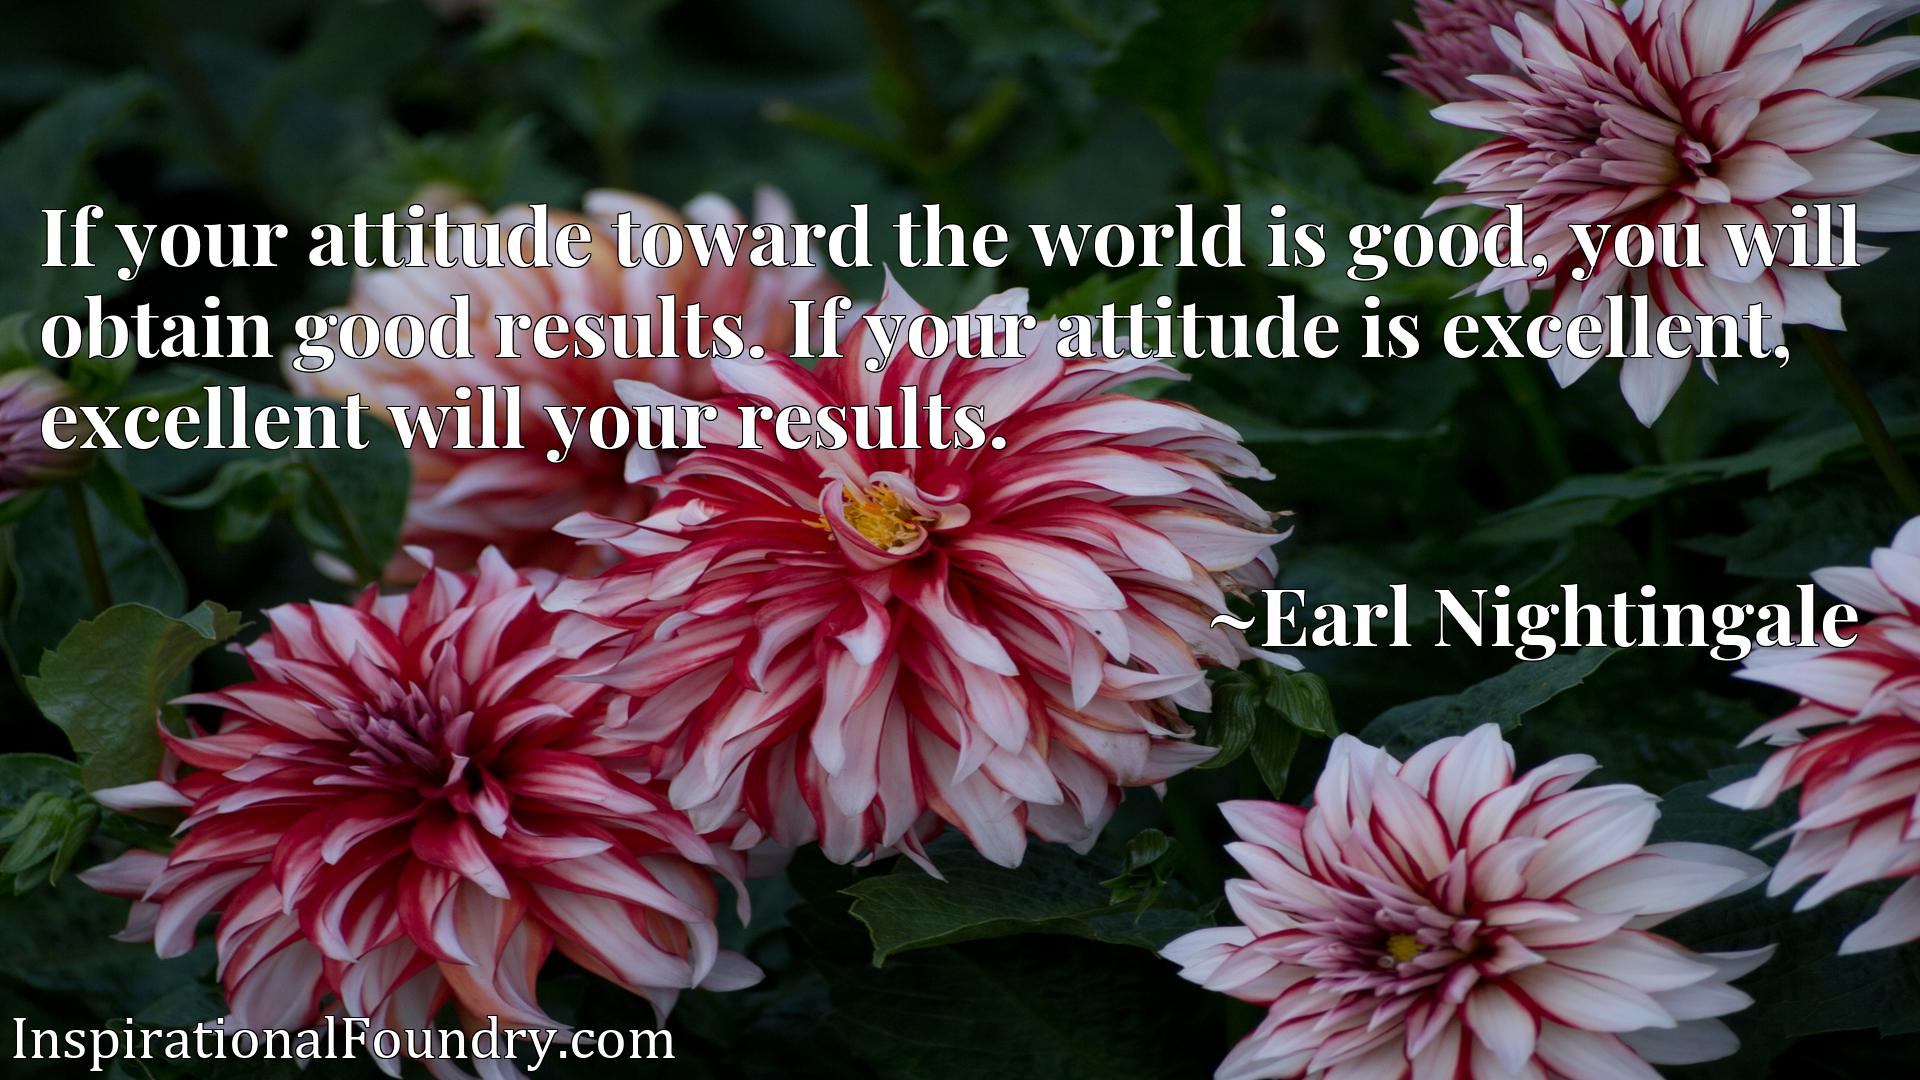 If your attitude toward the world is good, you will obtain good results. If your attitude is excellent, excellent will your results.